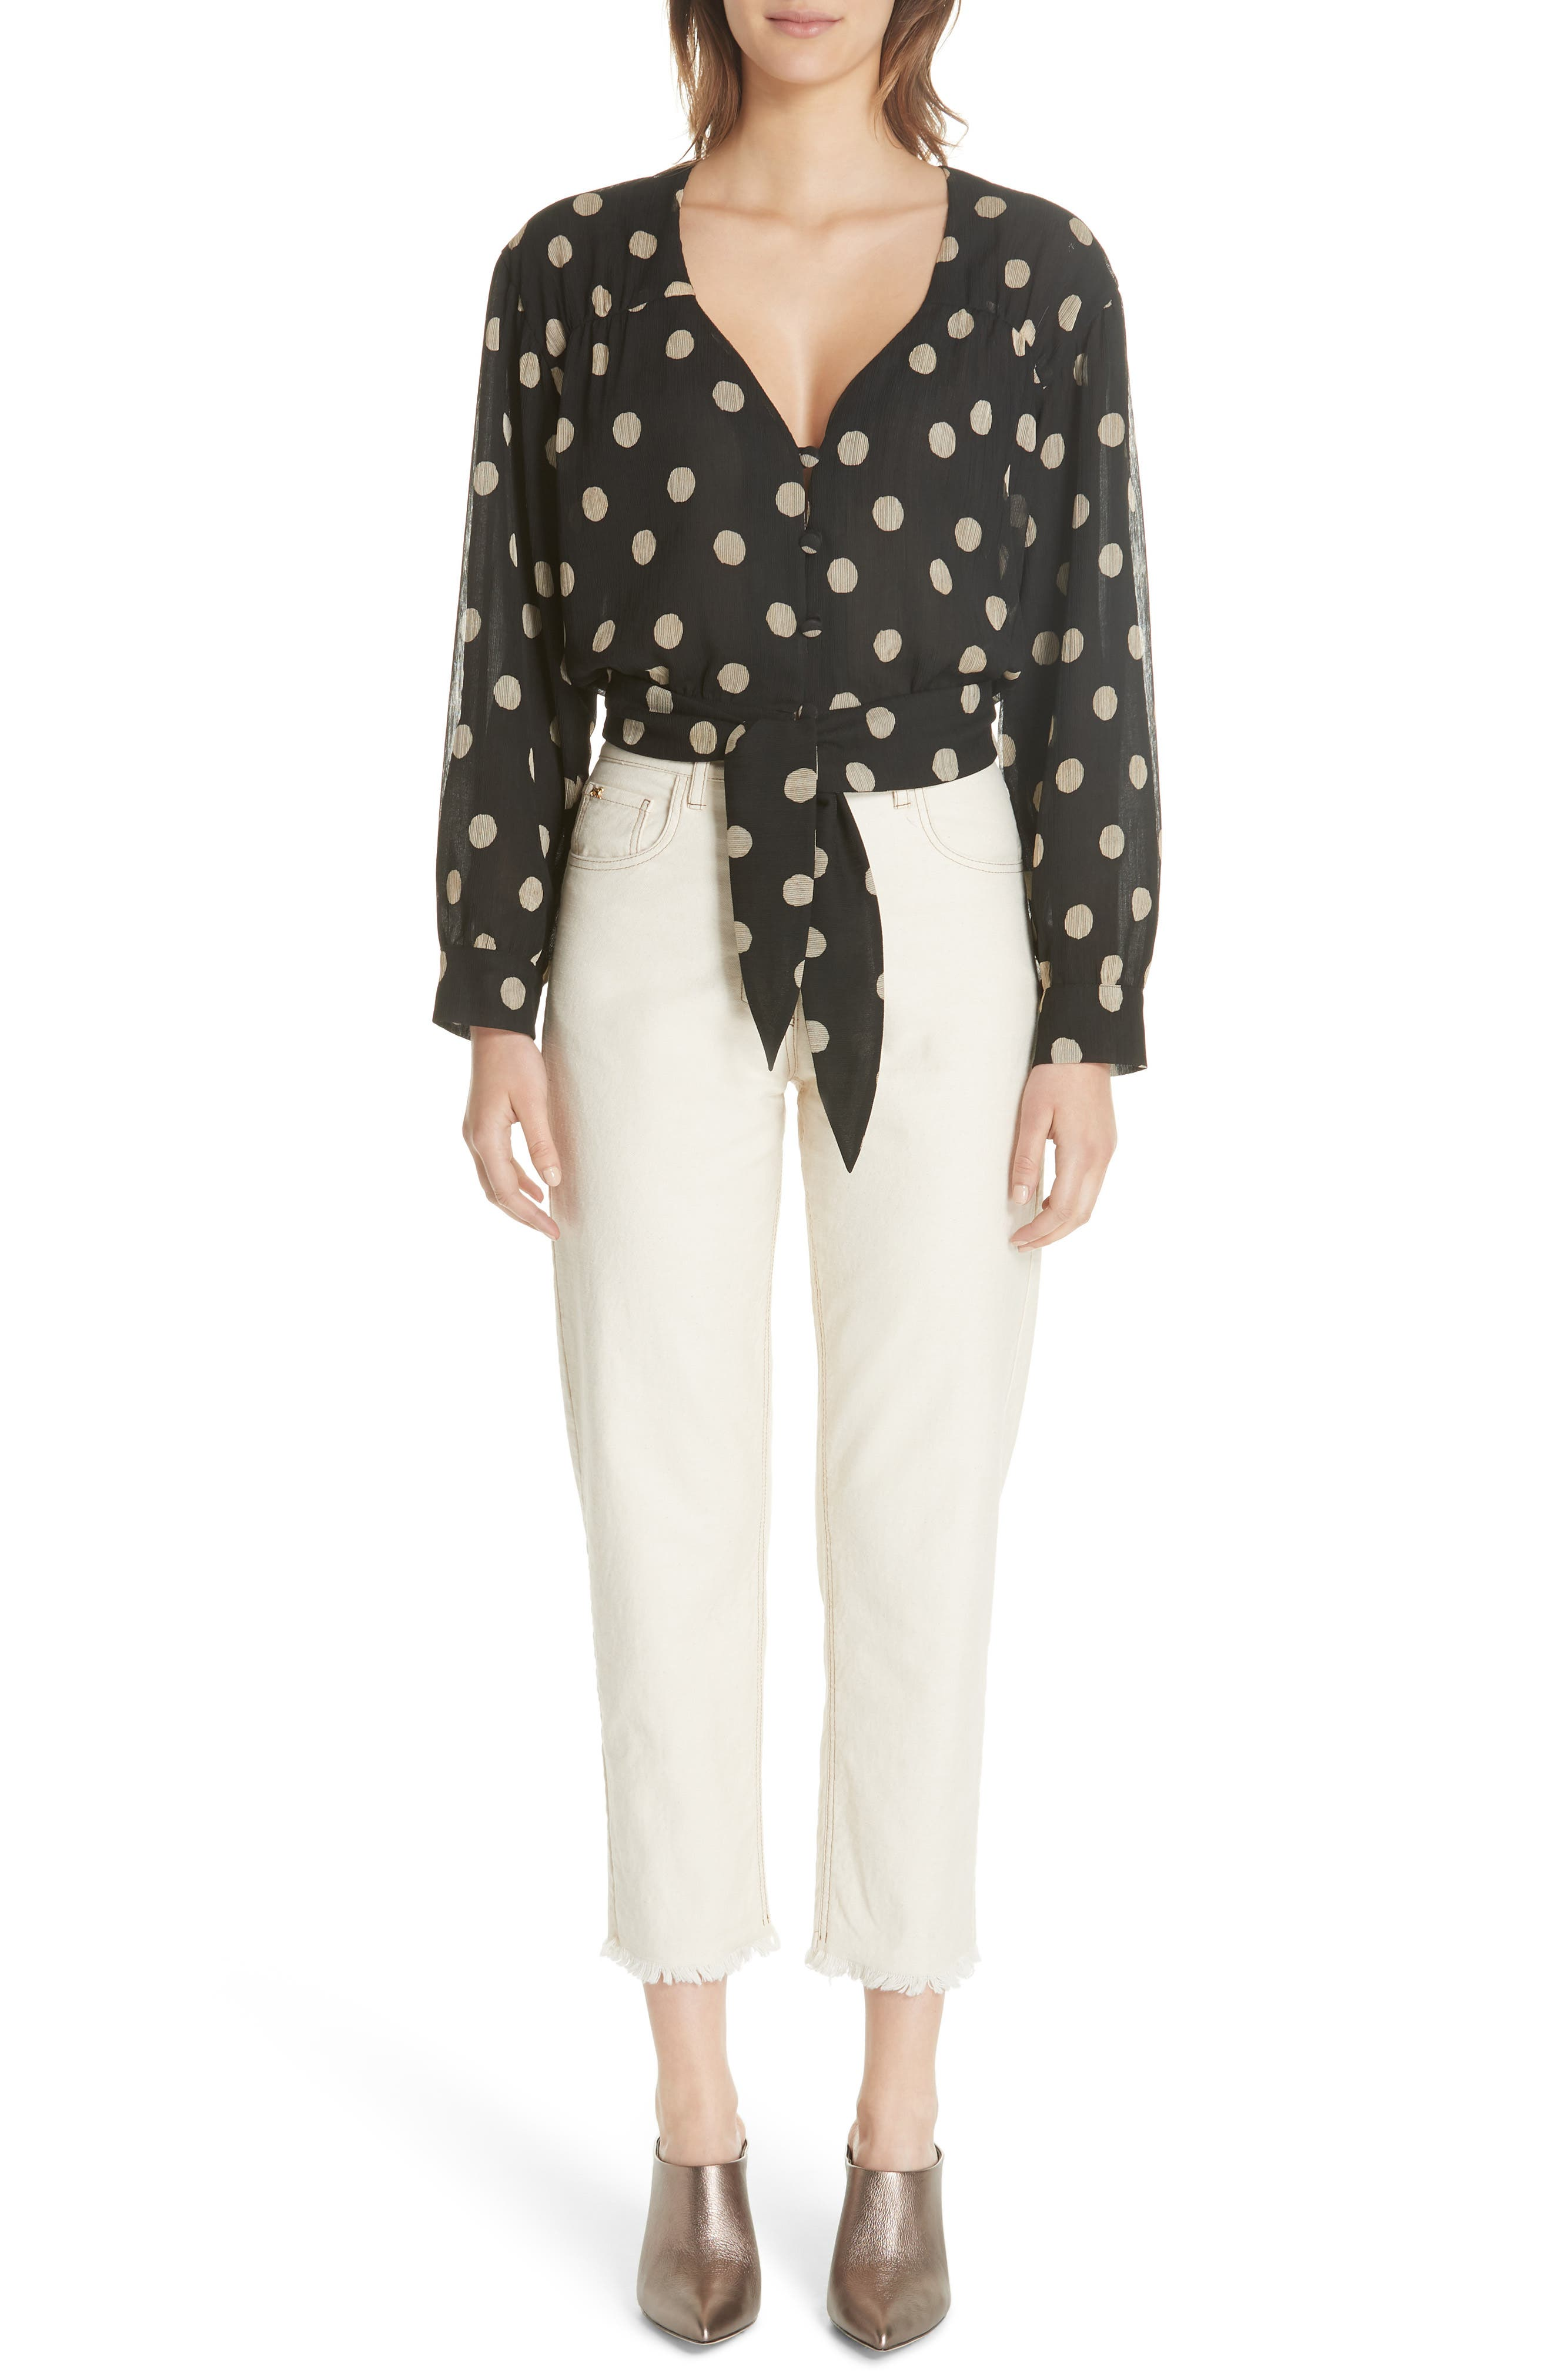 Amulet Polka Dot Tech Chiffon Blouse,                             Alternate thumbnail 7, color,                             Polka Dot